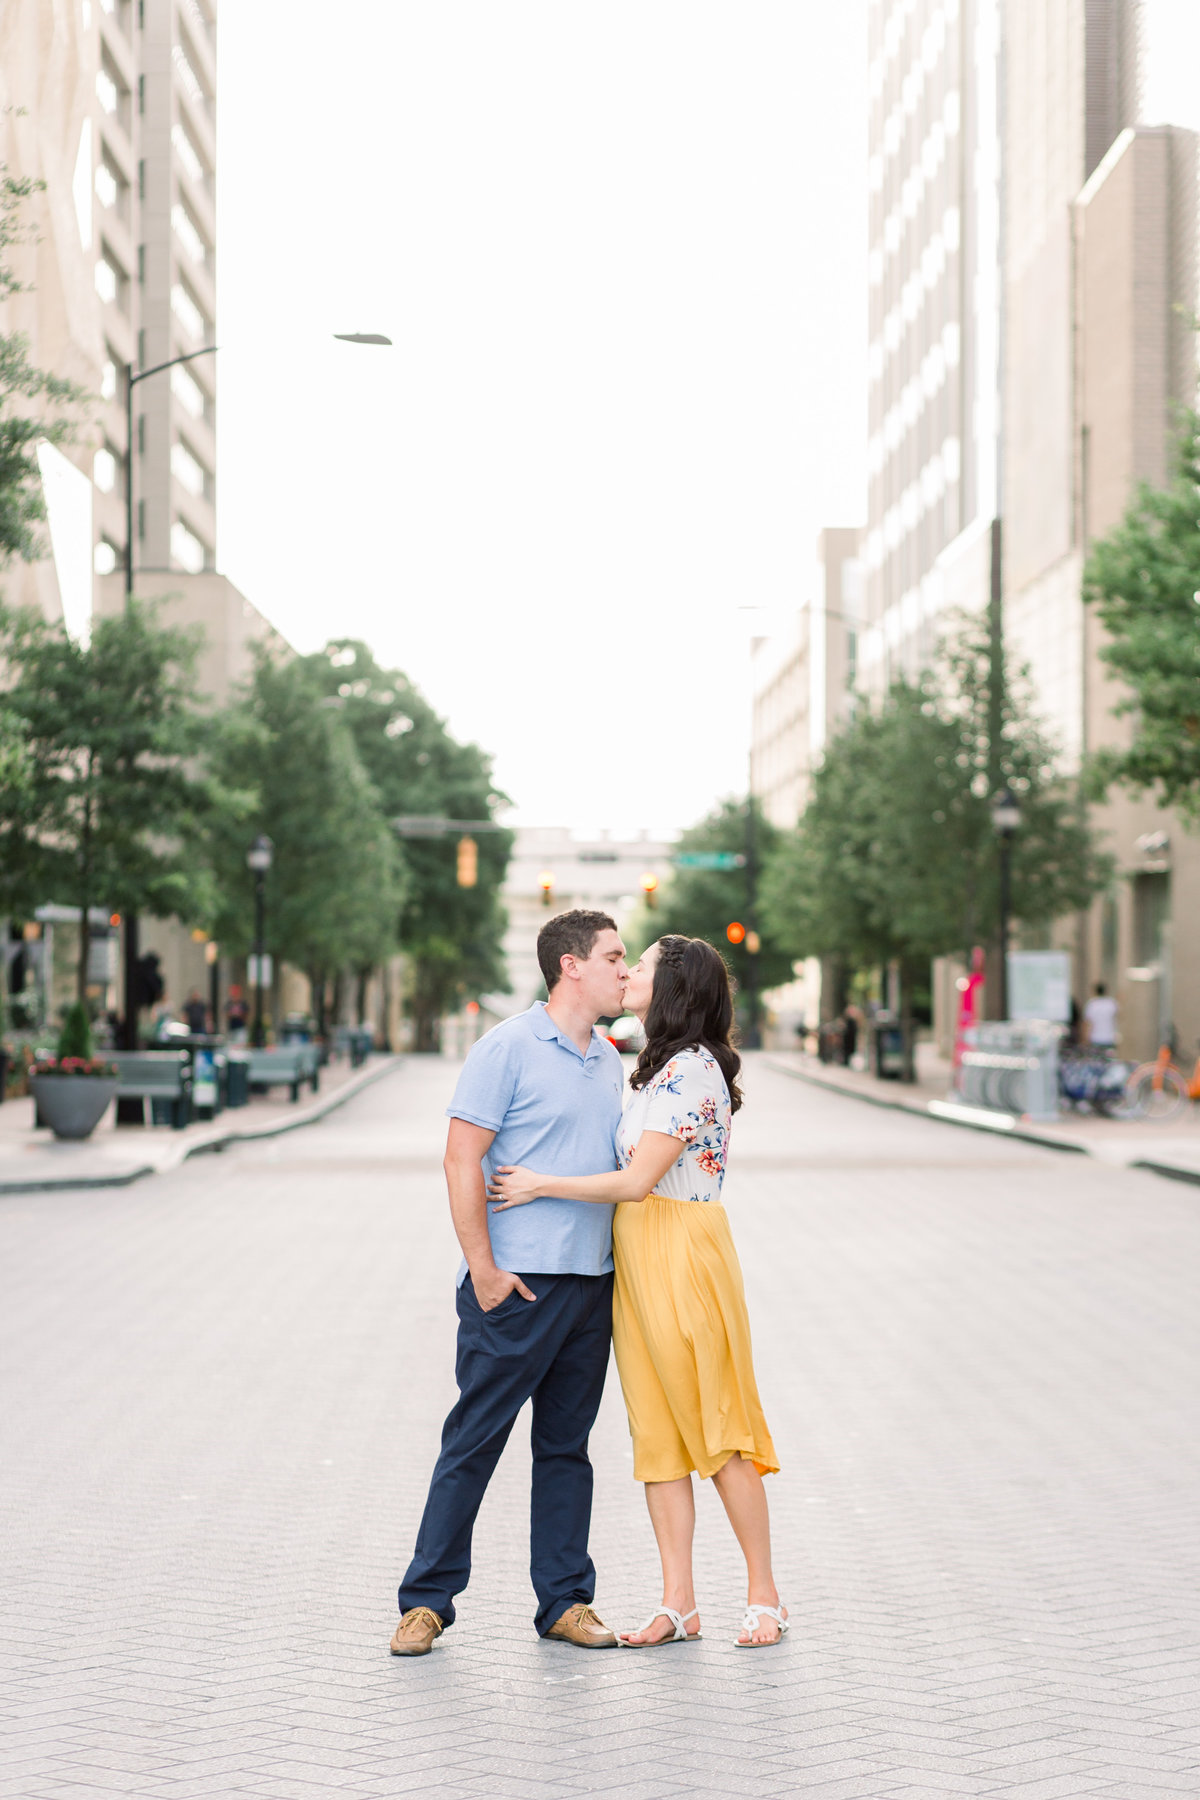 Blair and Patrick Engaged-Samantha Laffoon Photography-36